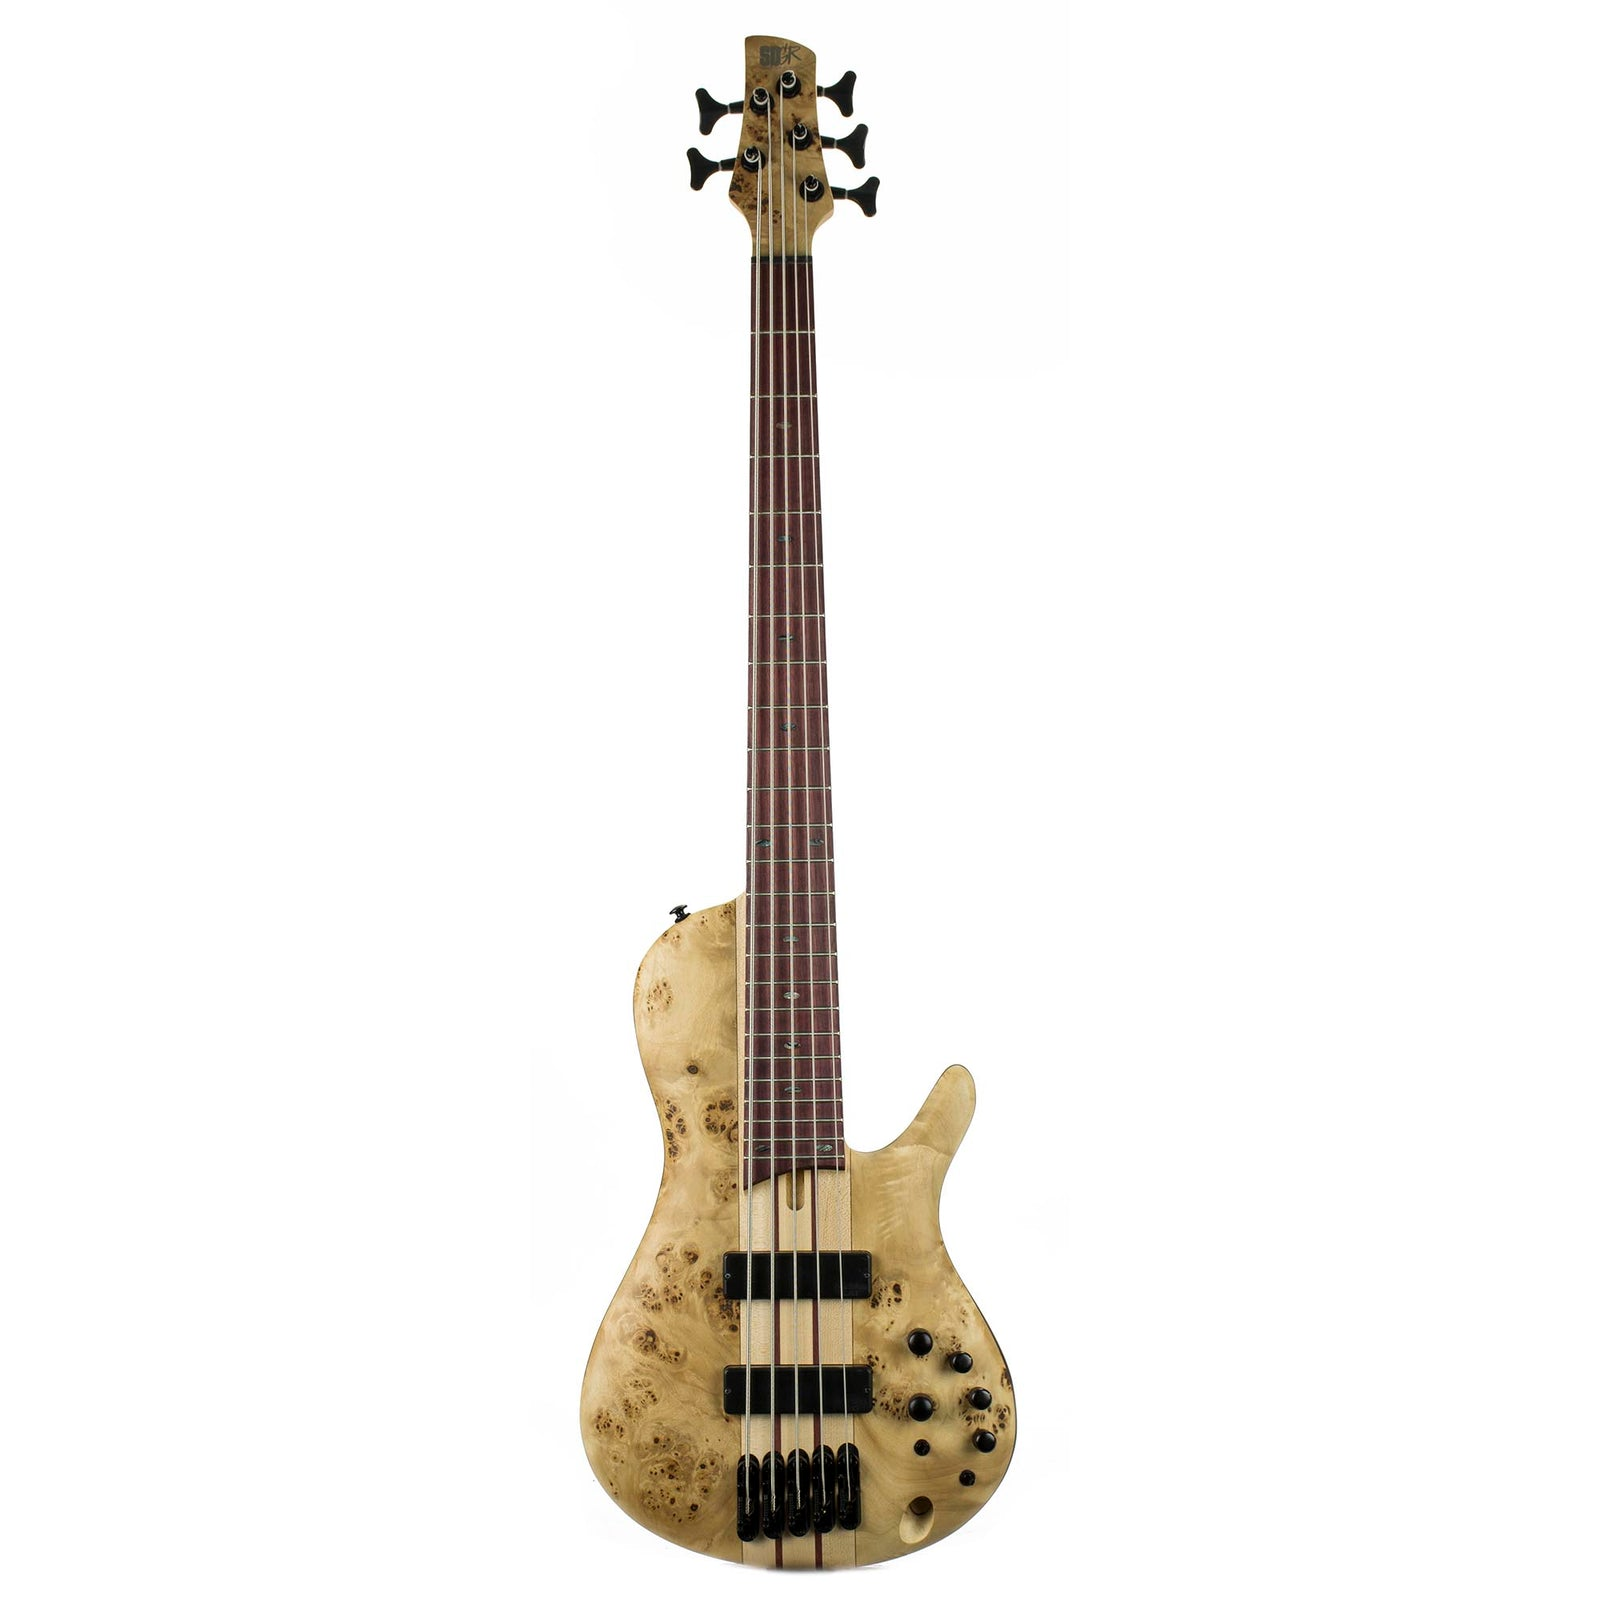 Ibanez Bass Workshop 5-String Bass - Natural Flat - Used